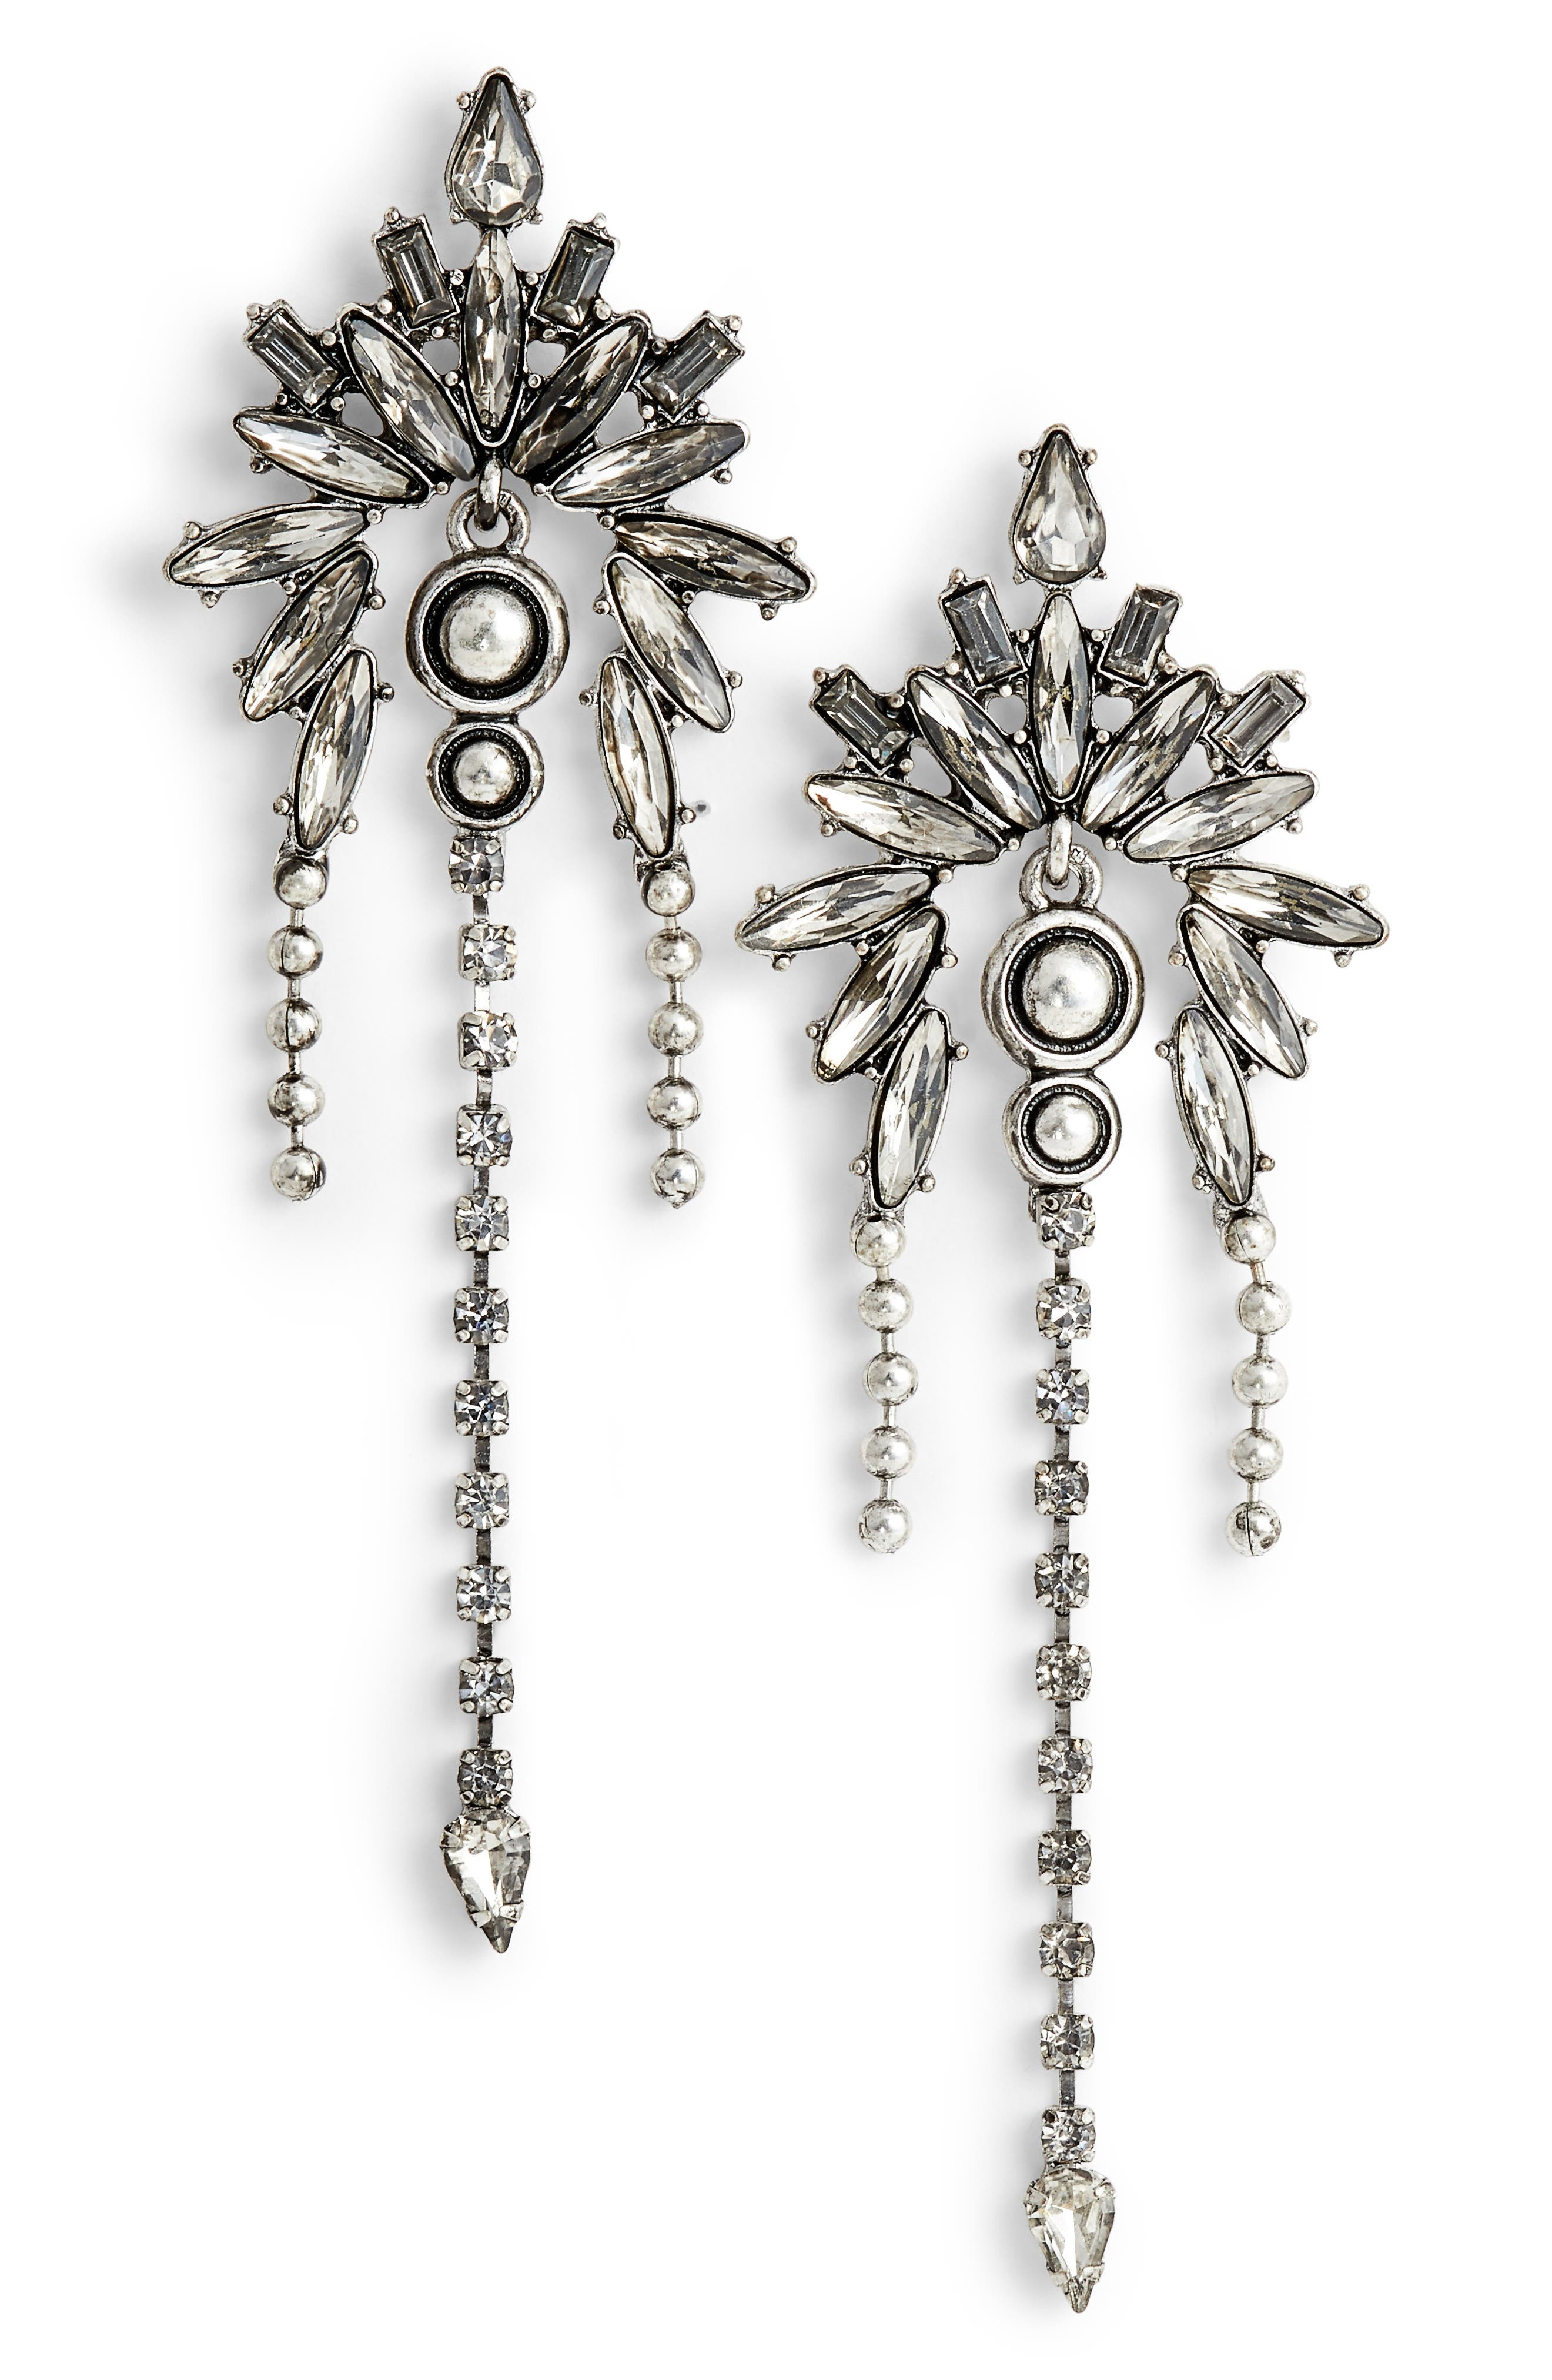 Main Image - DLNLX BY DYLANLEX Crystal Chandelier Earrings